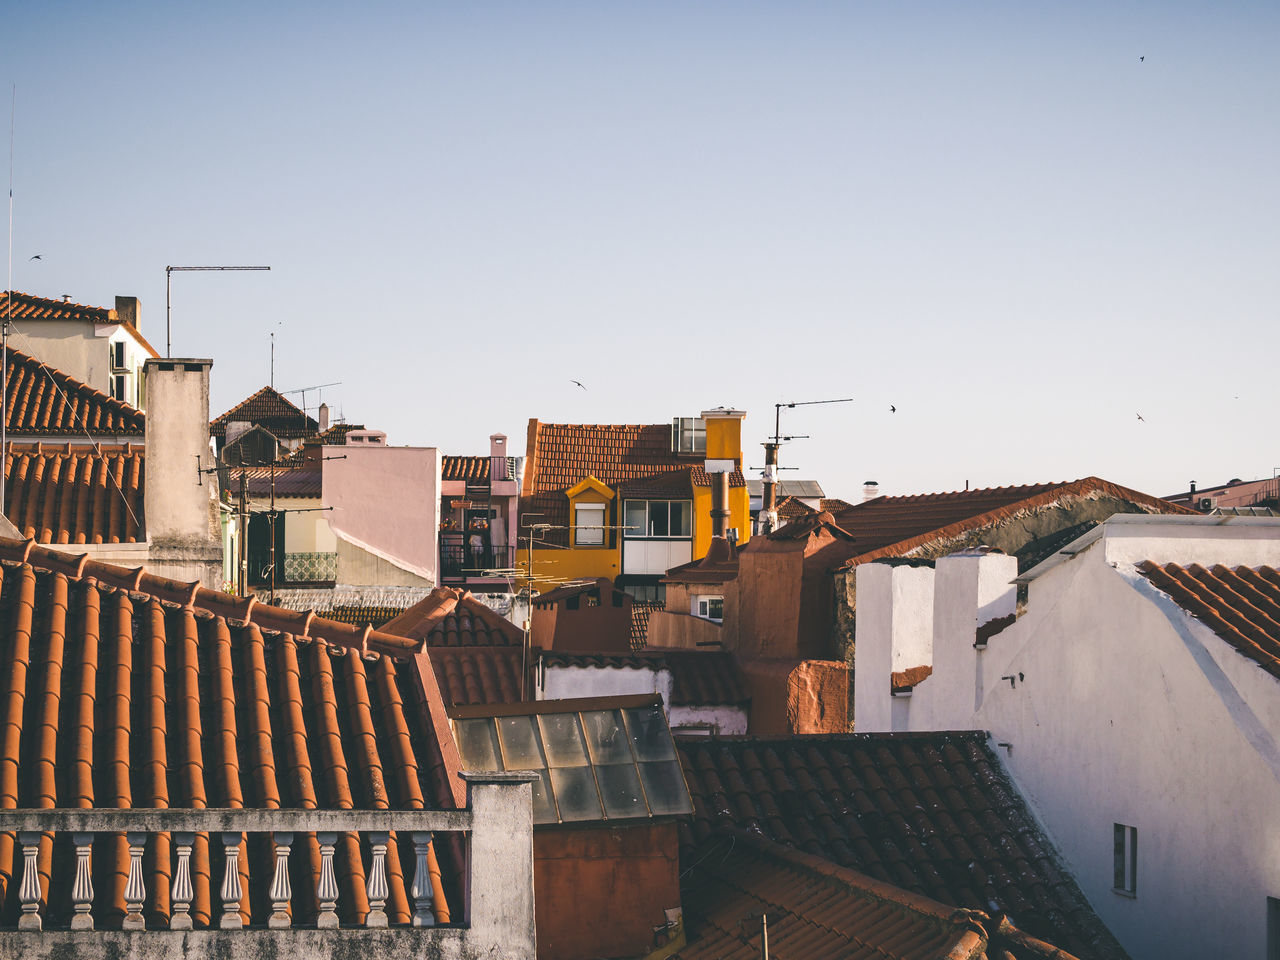 Architecture Building Exterior Built Structure City Citylandscape Cityscape Clear Sky Day House Lisboa Lisbon Lisbon Houses No People Outdoors Portugal Residential Building Roof Roof Landscape Rooftops Sky Street Tiled Roof  Town Townlandscape Yellow House